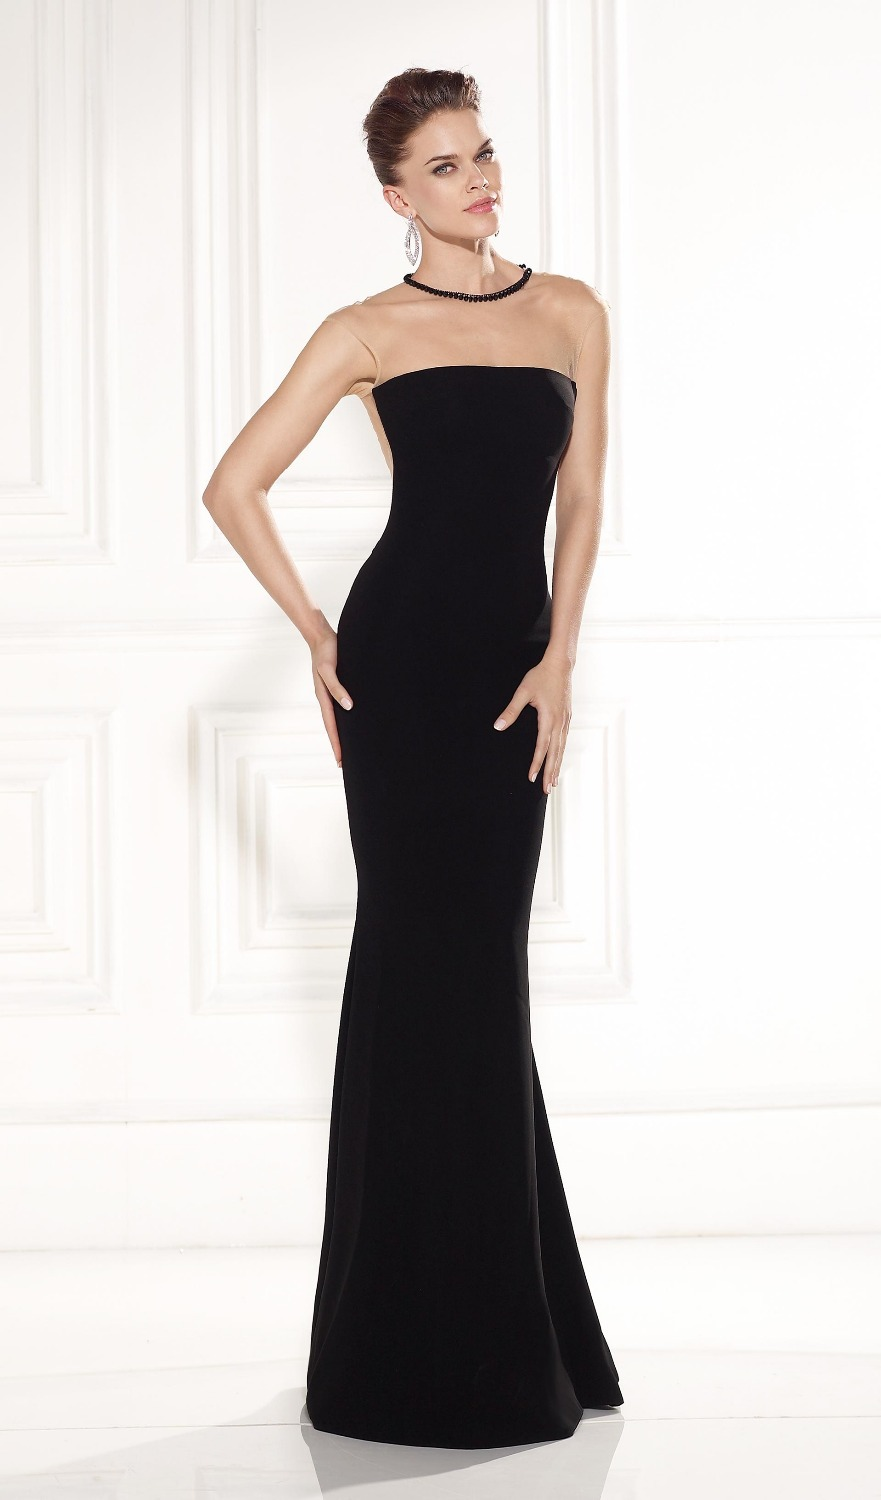 Black Dinner Dress Price Black Dinner Dress Price Trends - Buy ...